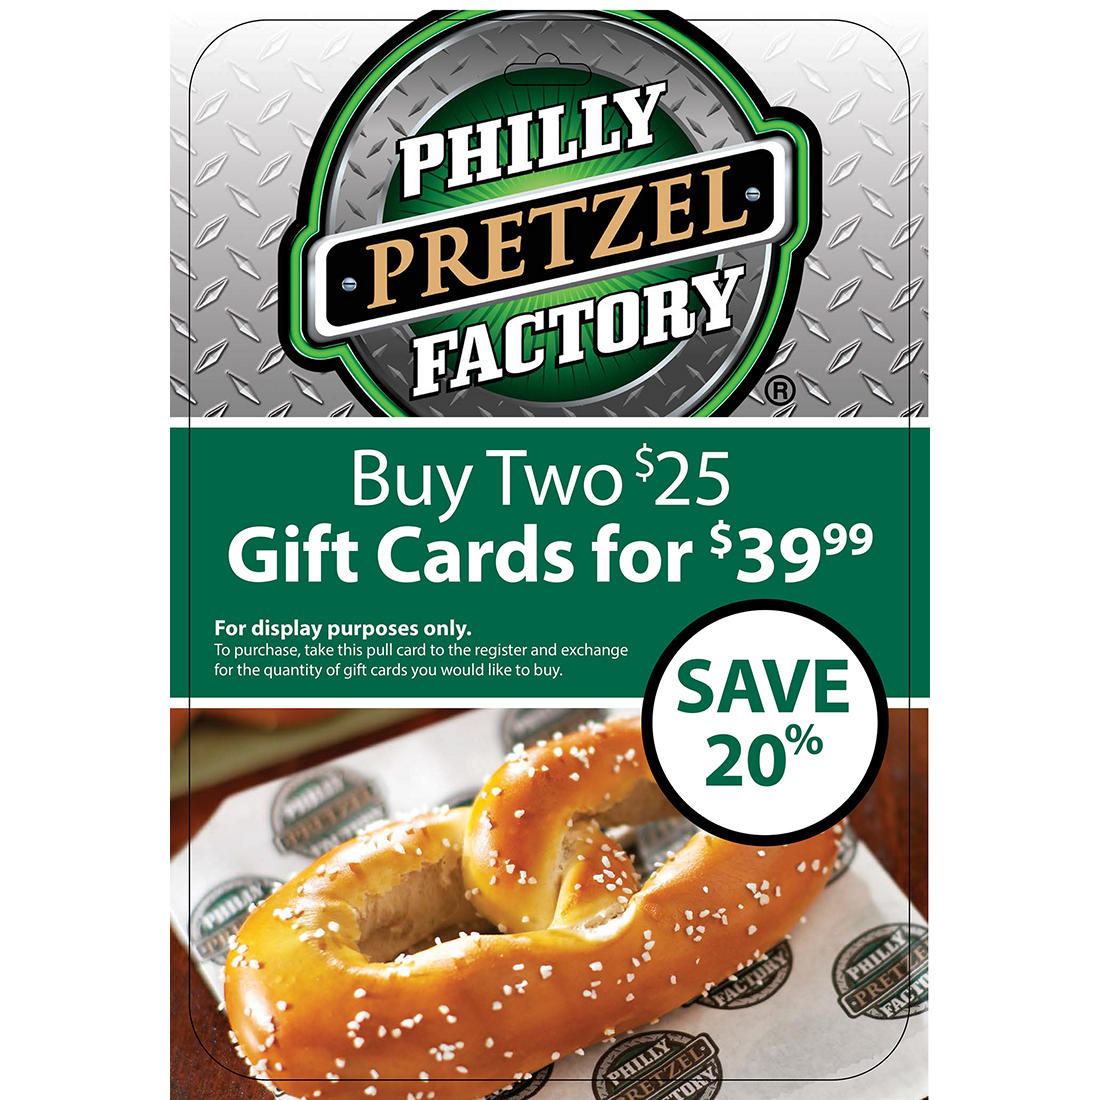 image about Philly Pretzel Factory Coupons Printable called $25 Philly Pretzel Manufacturing unit Present Card, 2 pk.